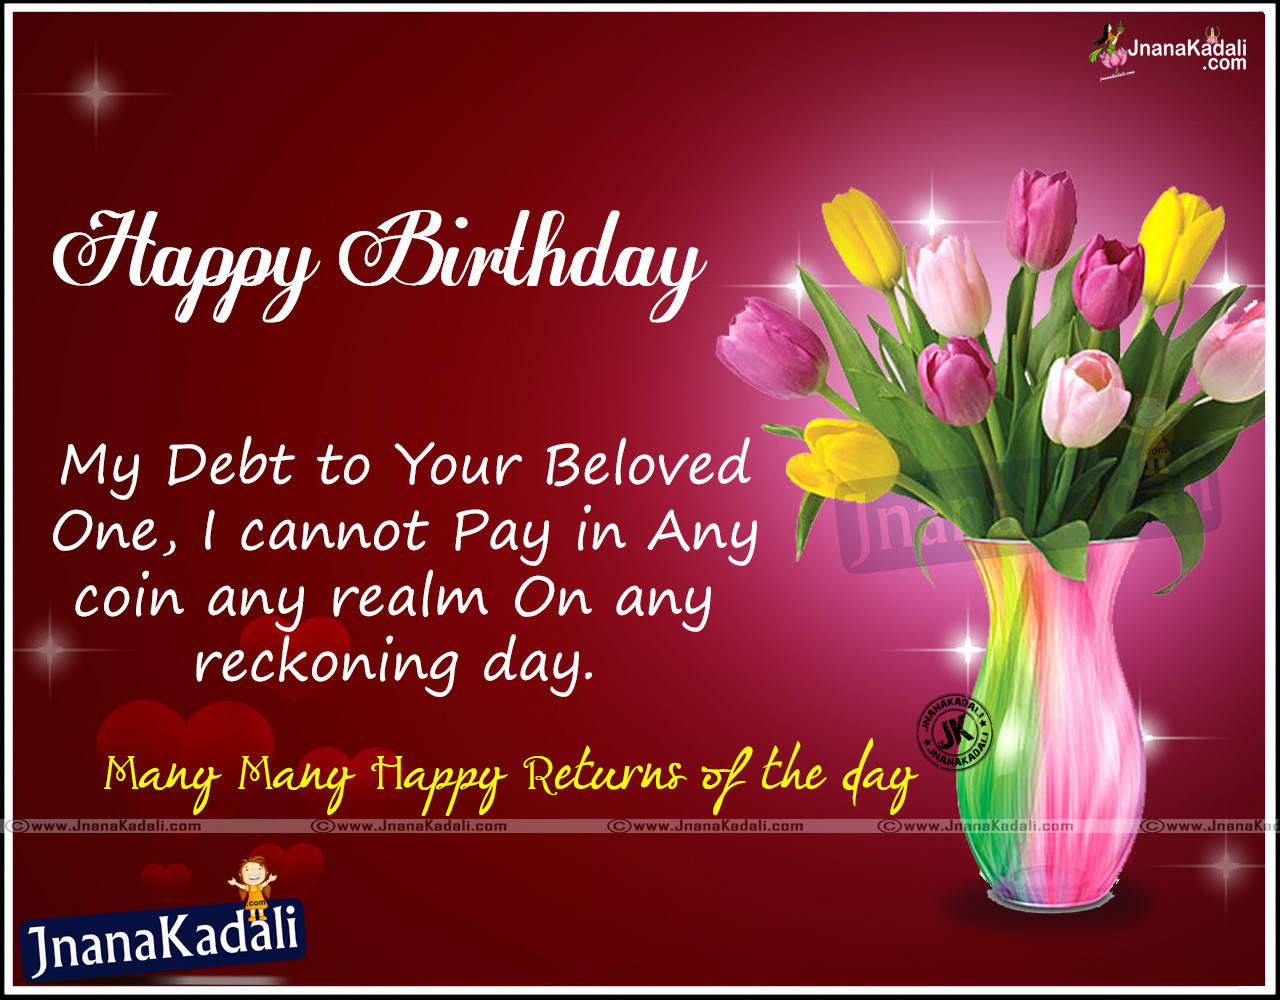 birthday message for best friend in hindi ; happy-birthday-my-best-friend-cards-unique-beautiful-happy-birthday-wishes-my-best-friend-sms-in-hindi-of-happy-birthday-my-best-friend-cards-1